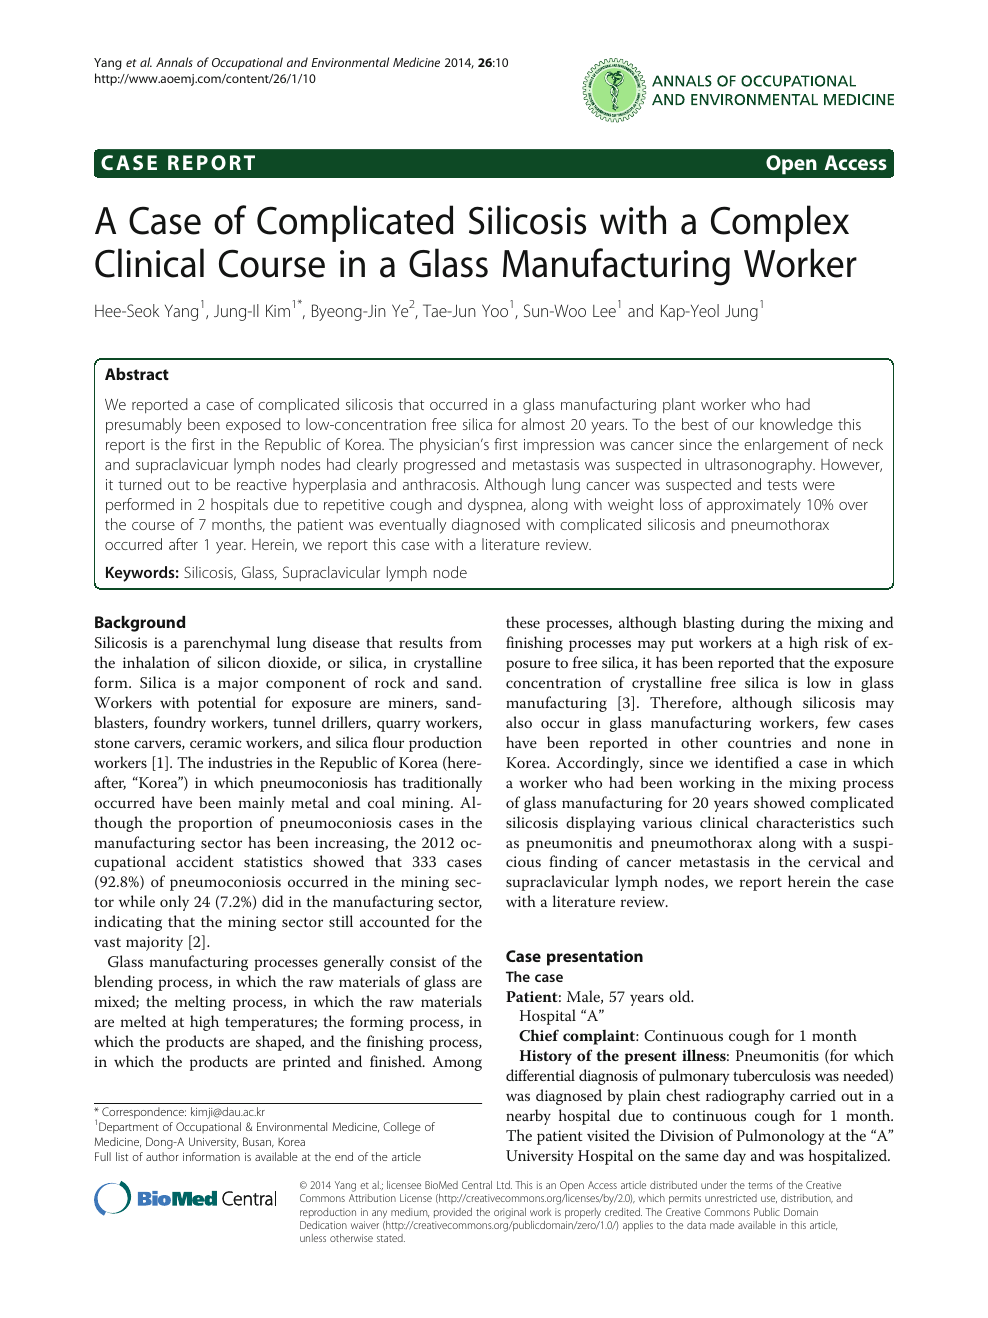 A Case of Complicated Silicosis with a Complex Clinical Course in a